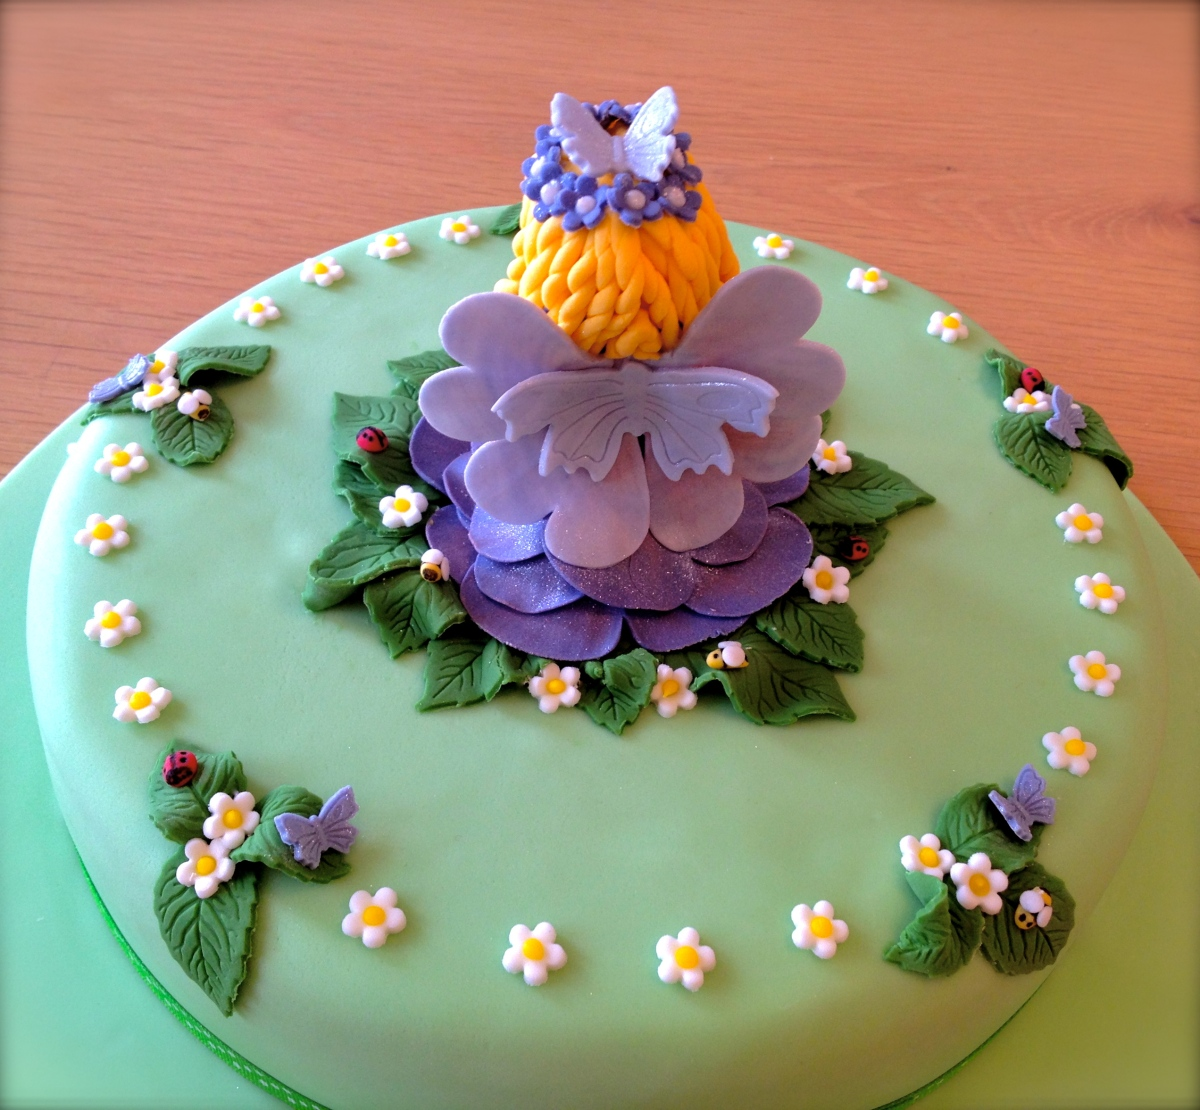 Blue Fairy Cake Back View